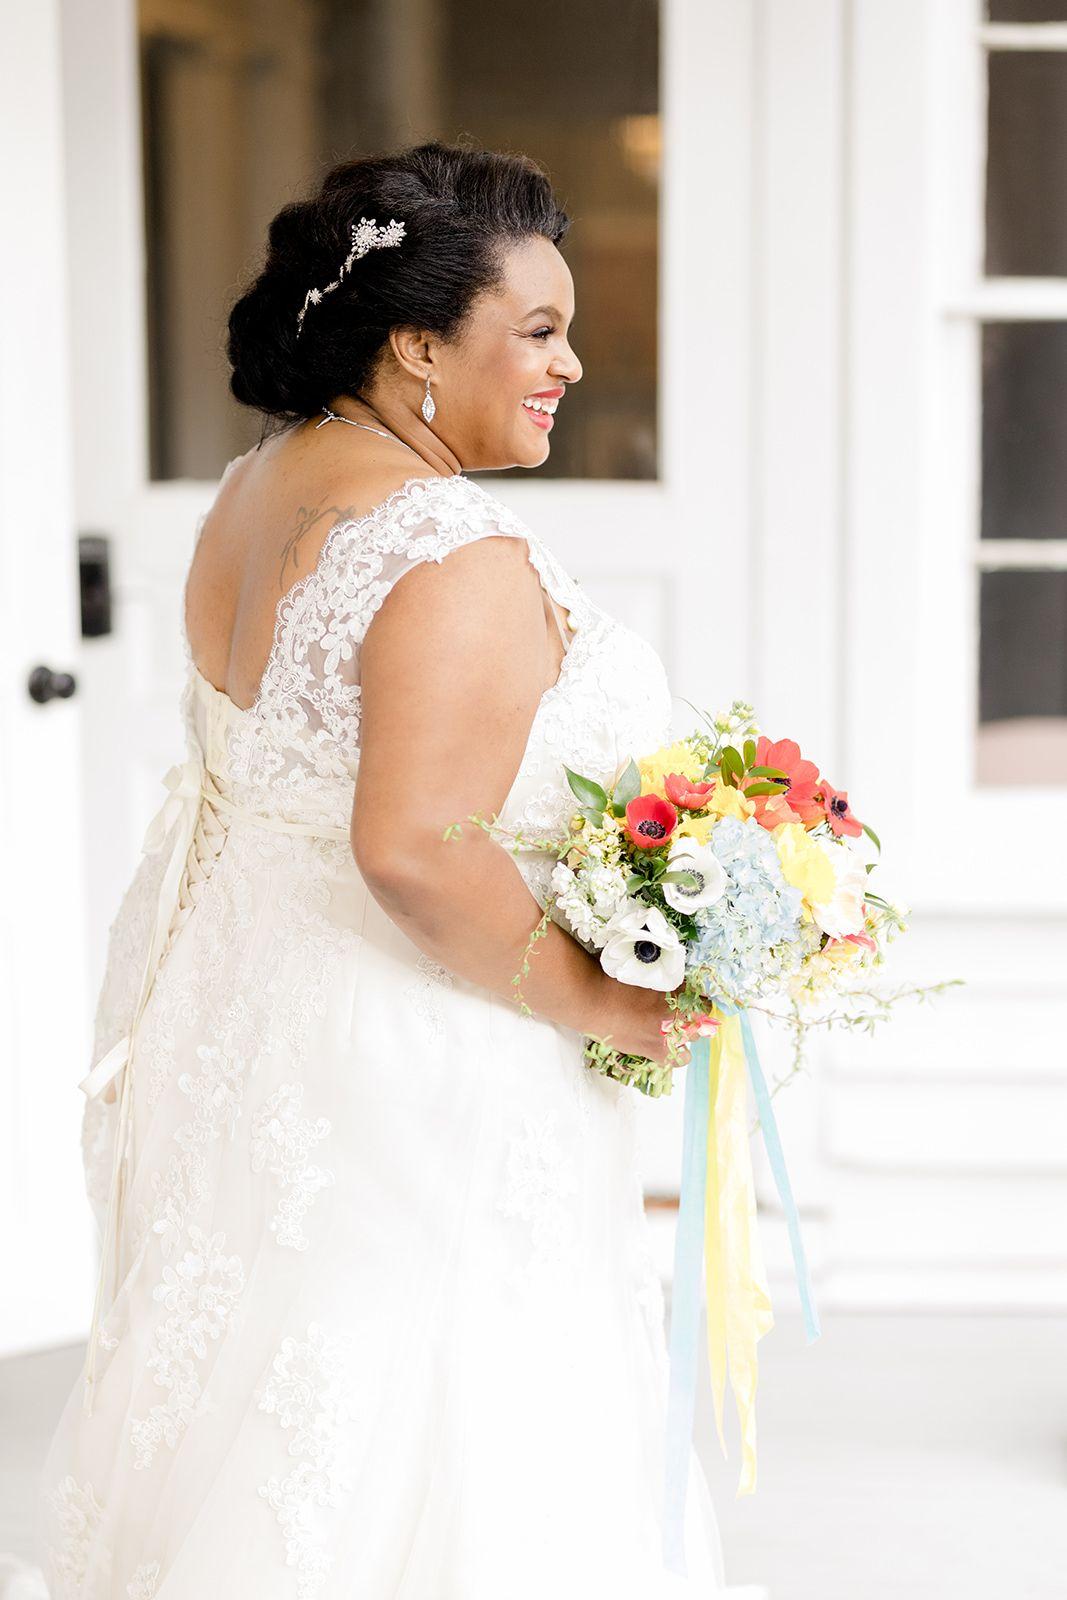 Joyful bride with a bright bouquet | A Bright, Colorful Wizard of Oz ...